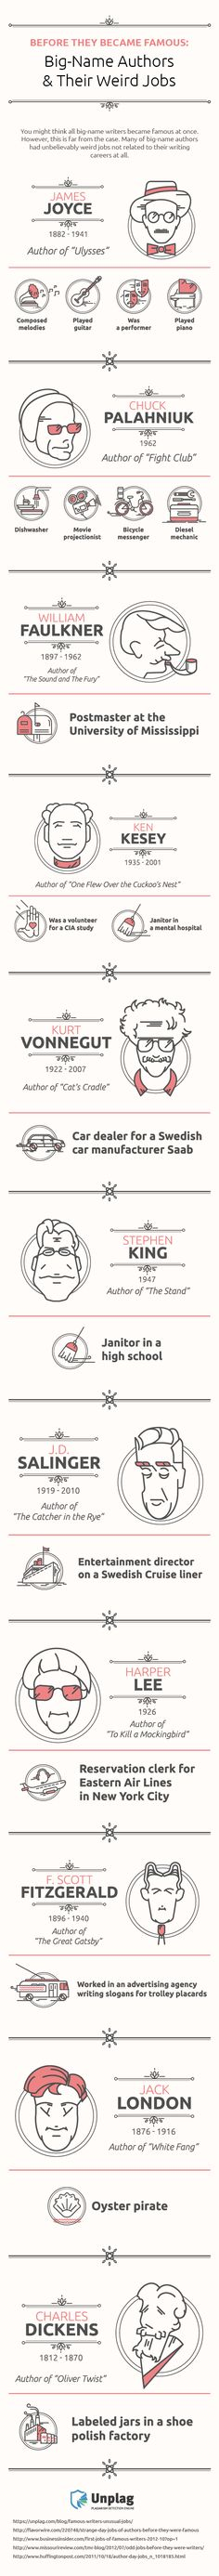 Unusual Jobs Of Famous Writers #infographic #Writers #Career #Jobs